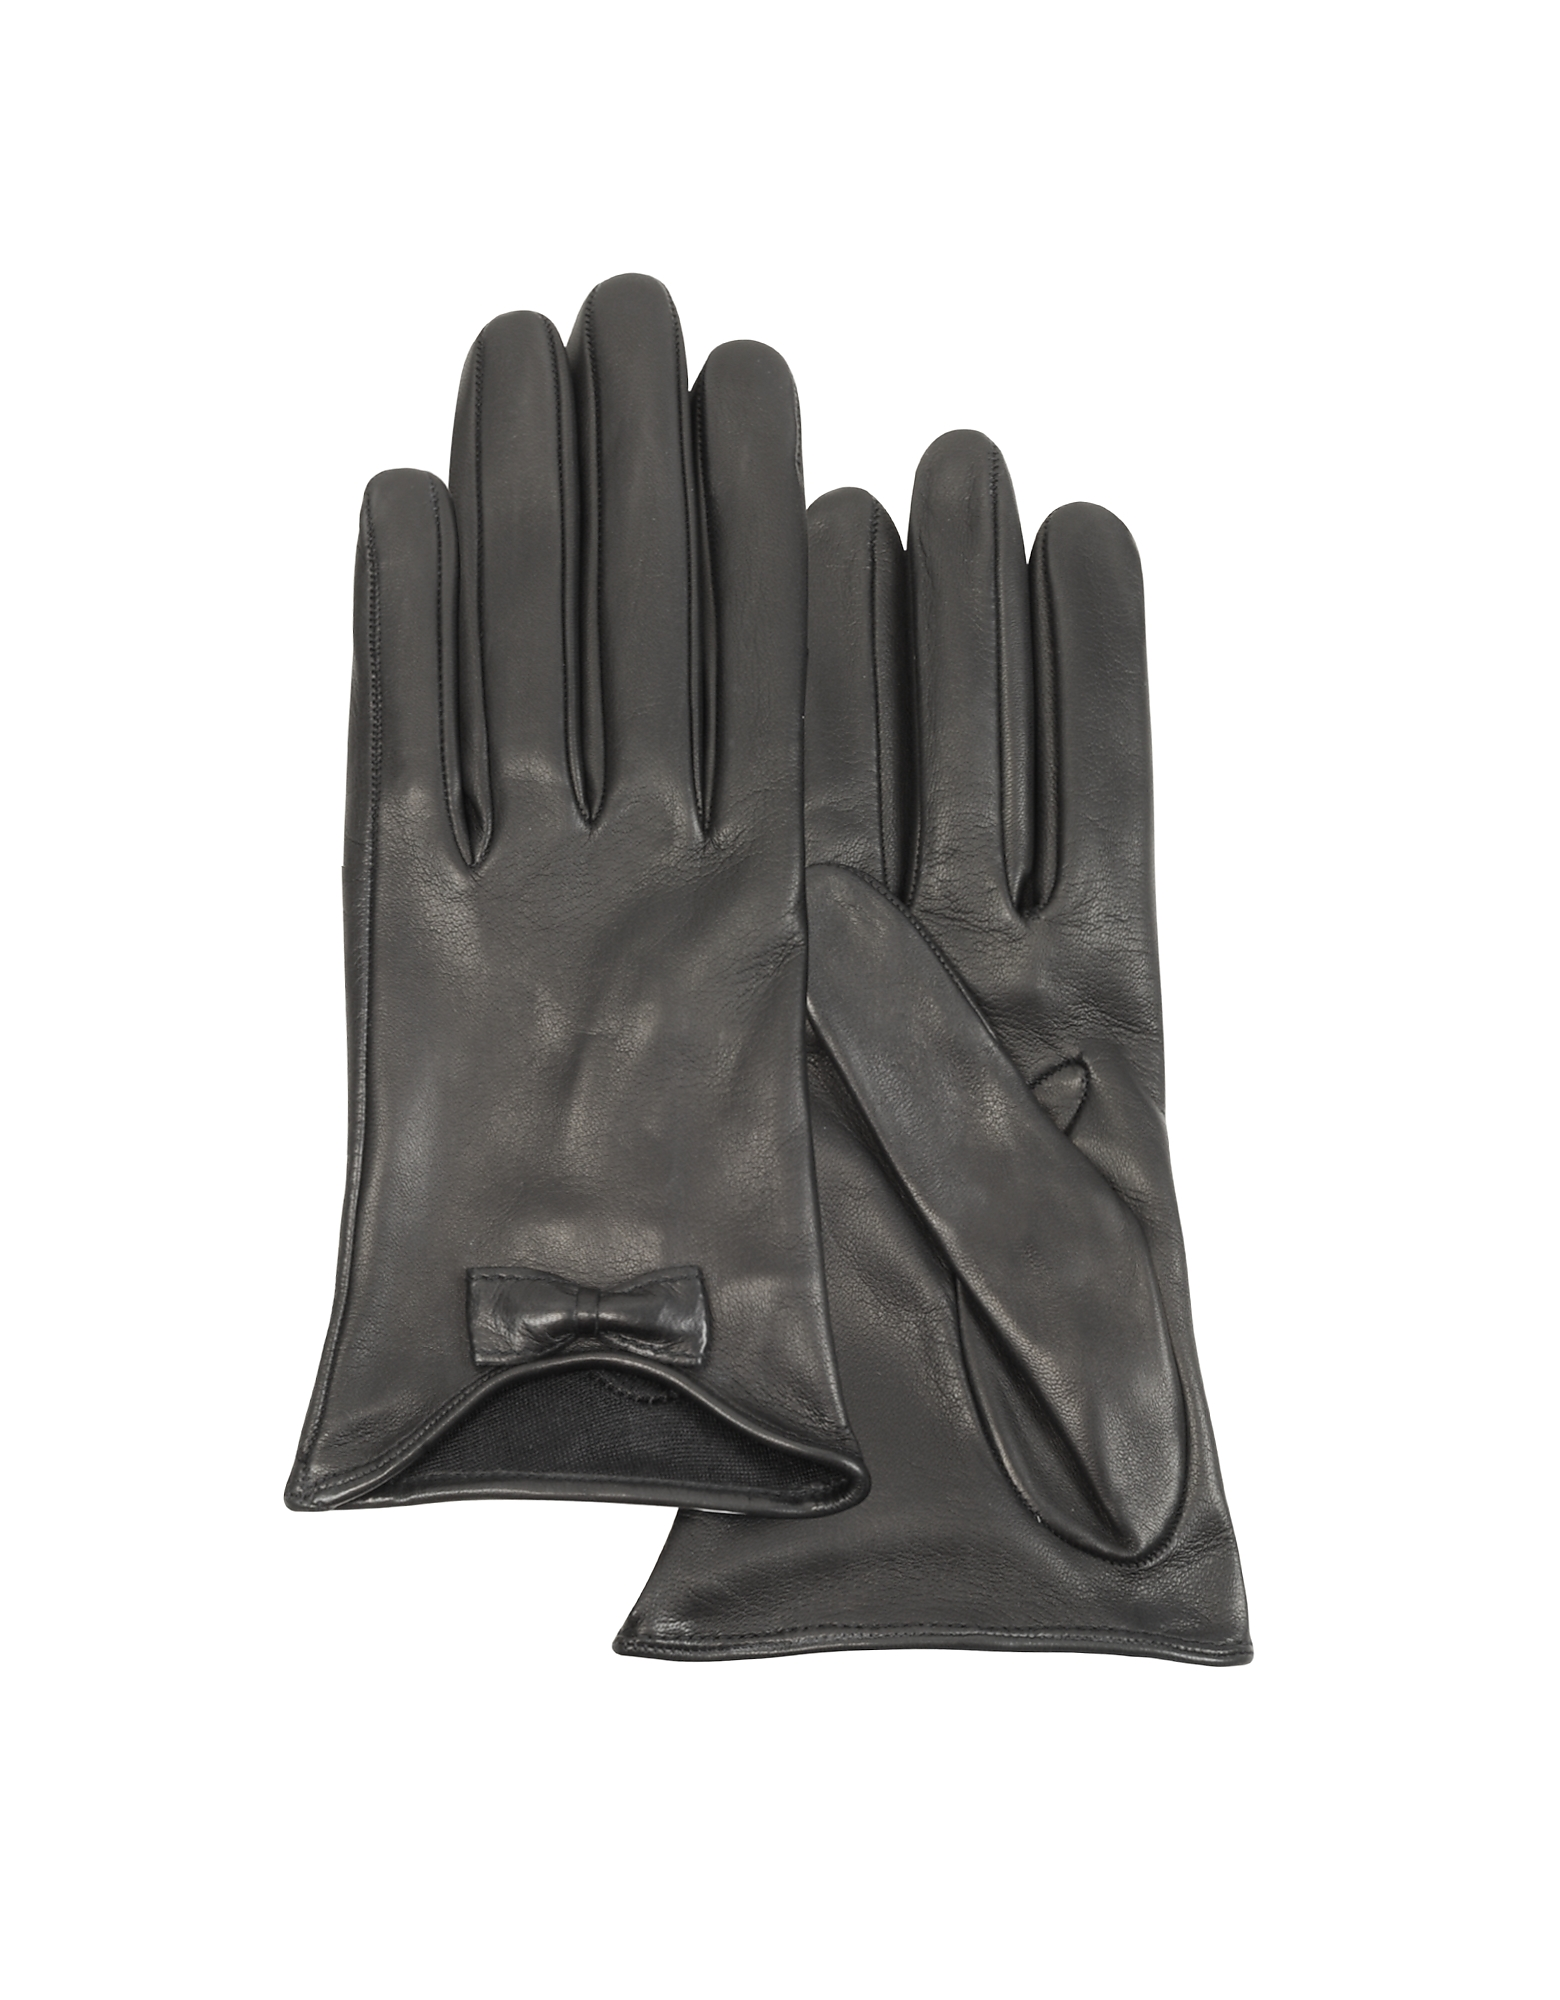 Forzieri Women's Gloves, Leather Gloves with Bow